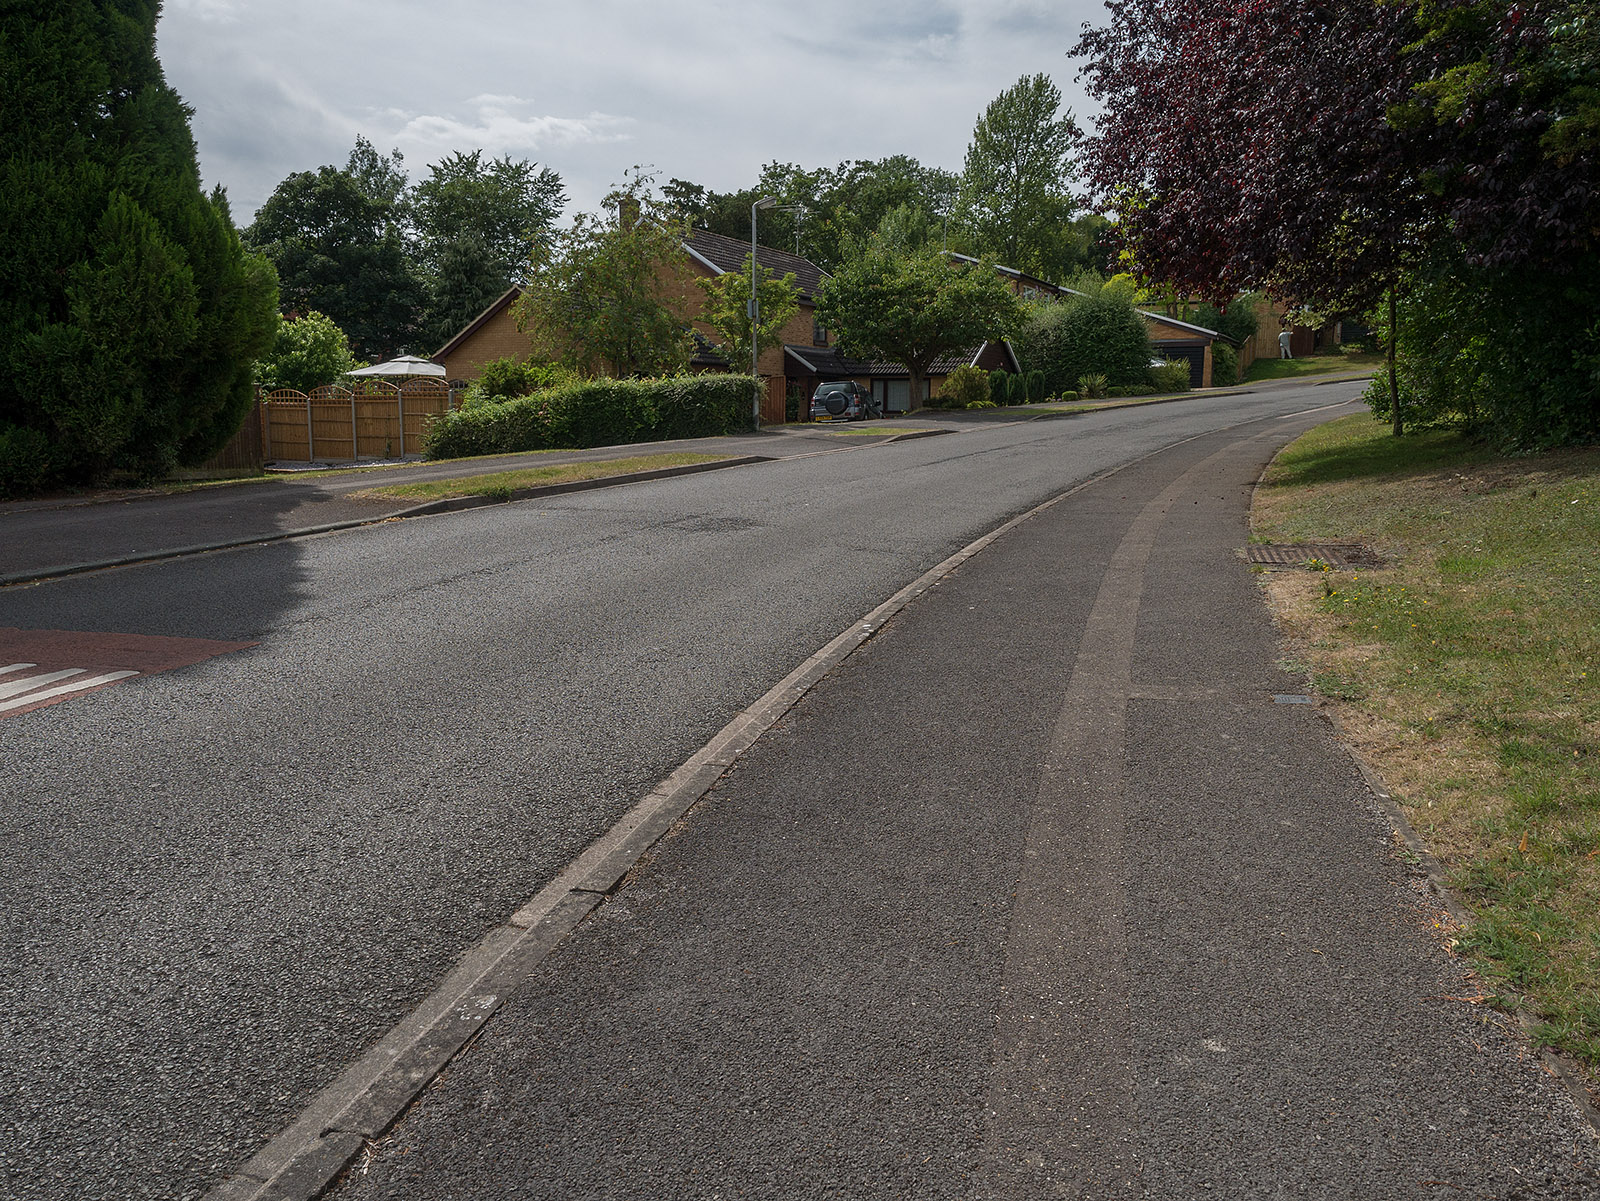 The Thames Path becomes an urban road as we pass up into Purley before descending again